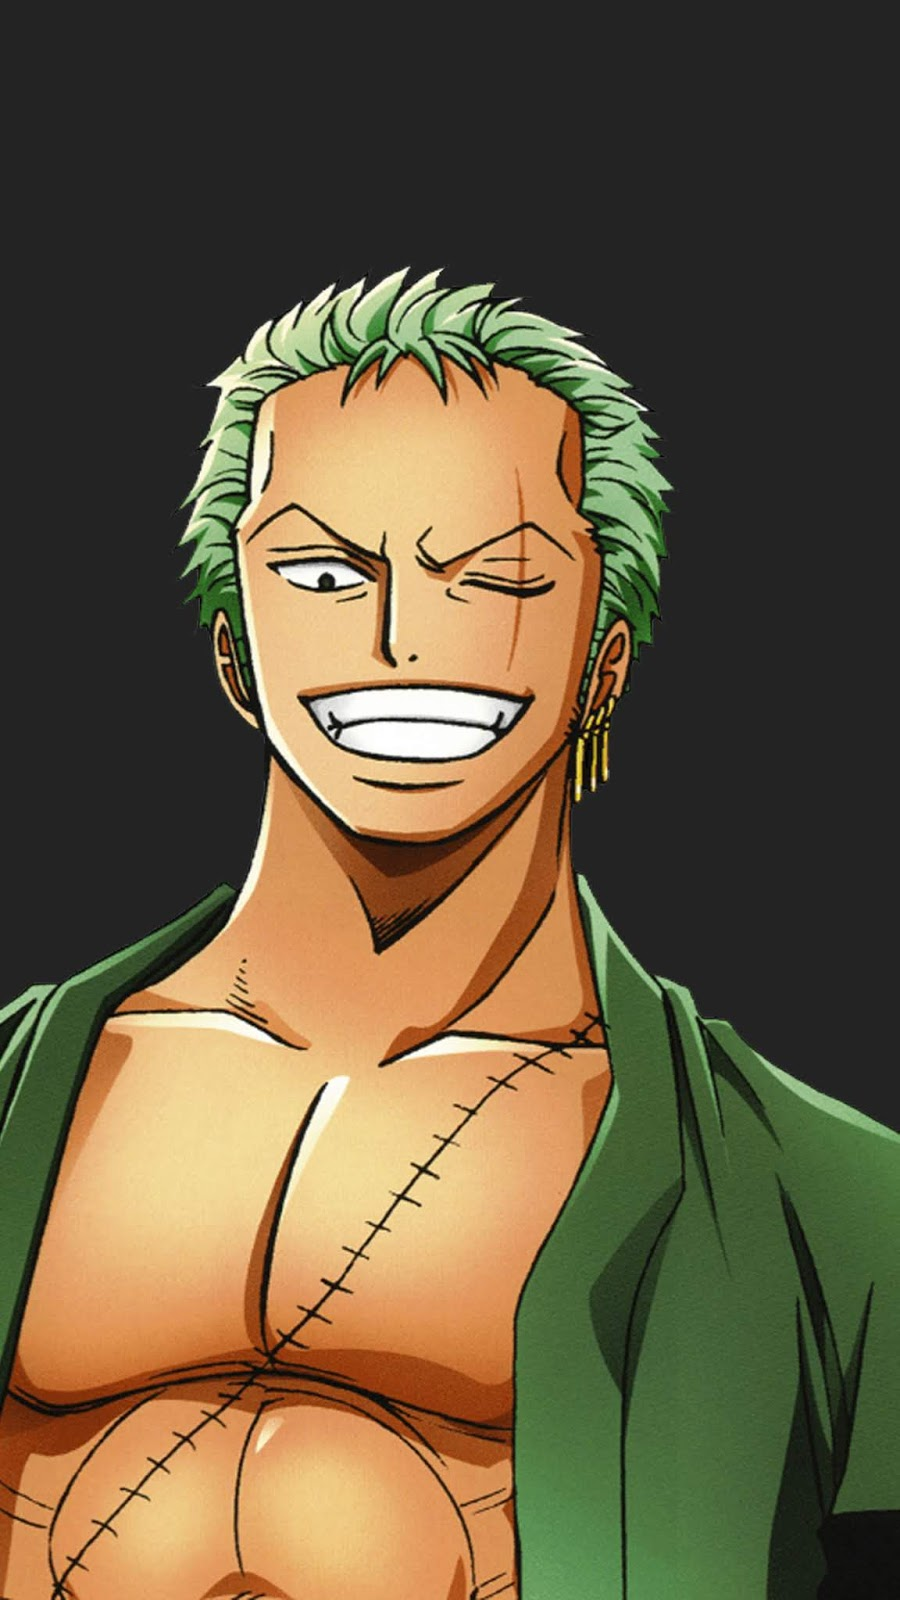 See the handpicked one piece zoro mobile wallpaper images and share with your frends and social sites. Zoro one piece